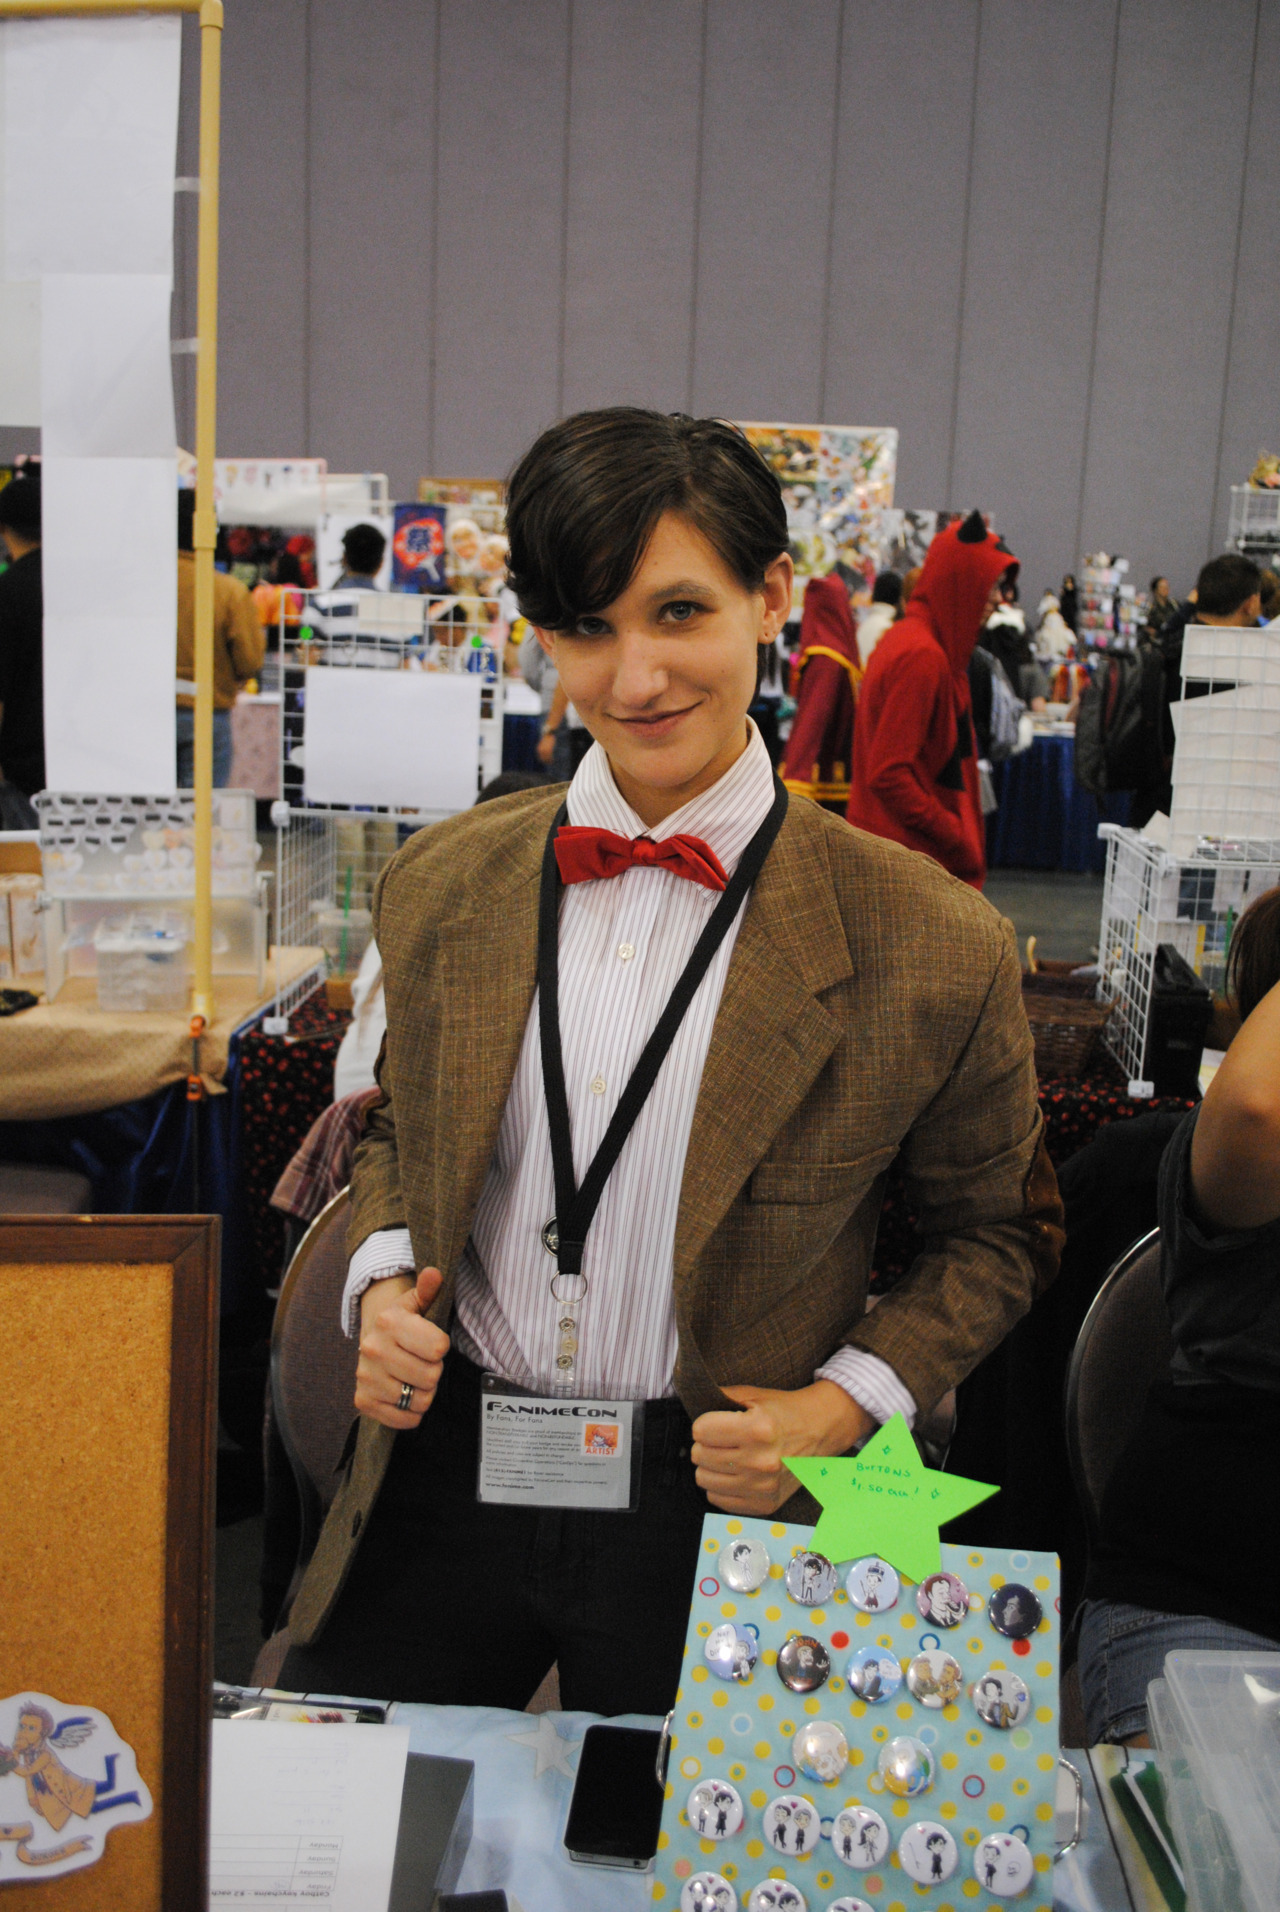 copperbettas:  This girl seriously looked like a female version of the doctor, it was amazing.